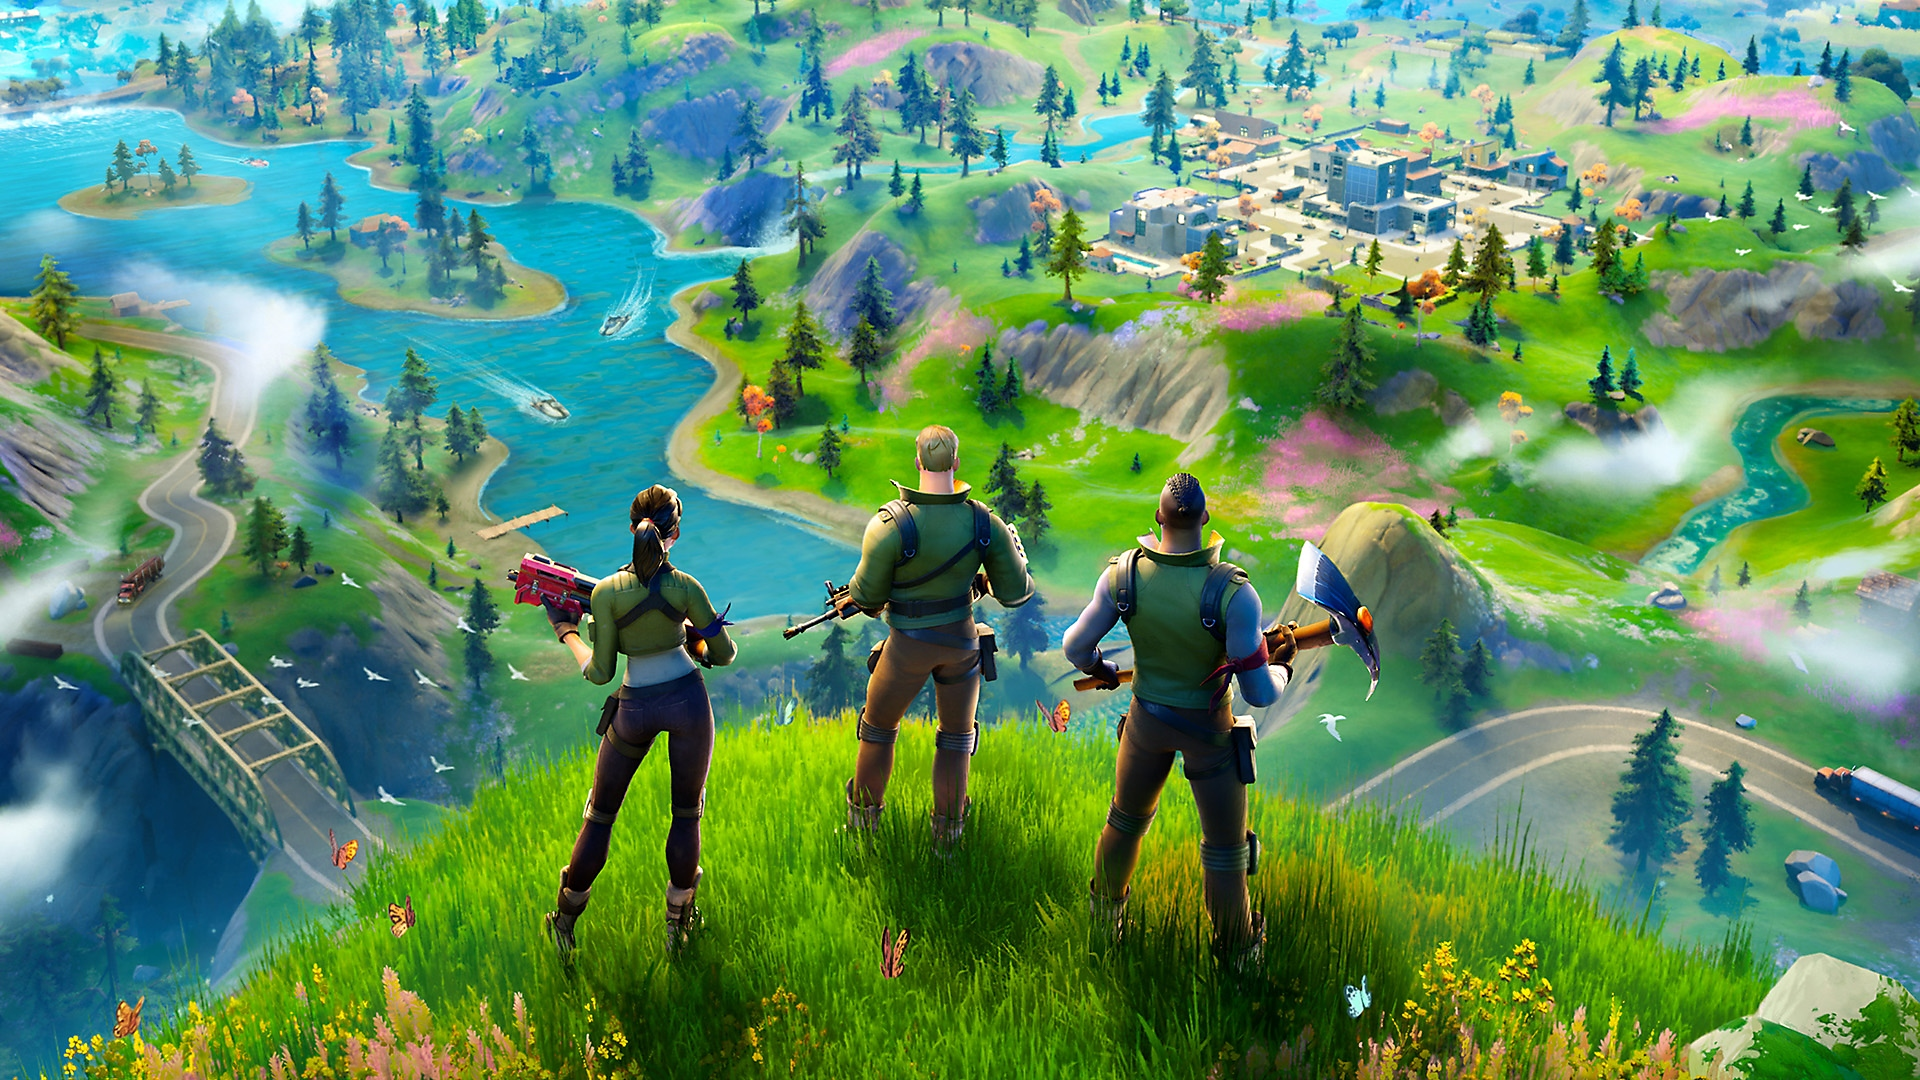 Fortnite – Season 2 – Key Art